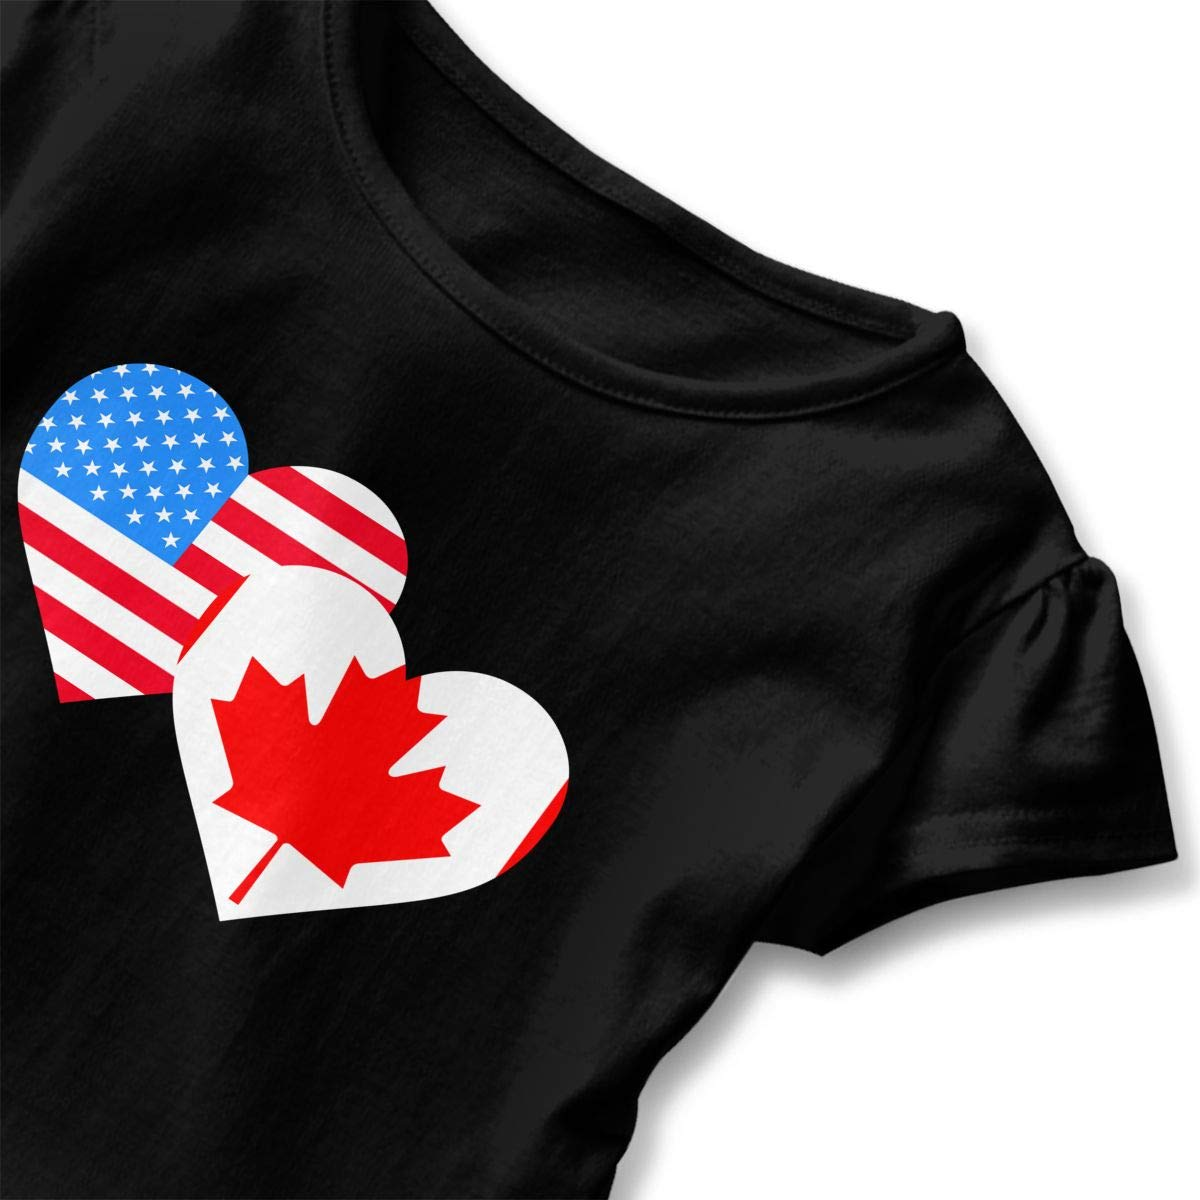 HYBDX9T Little Girls American Canada Heart Flag Funny Short Sleeve Cotton T Shirts Basic Tops Tee Clothes